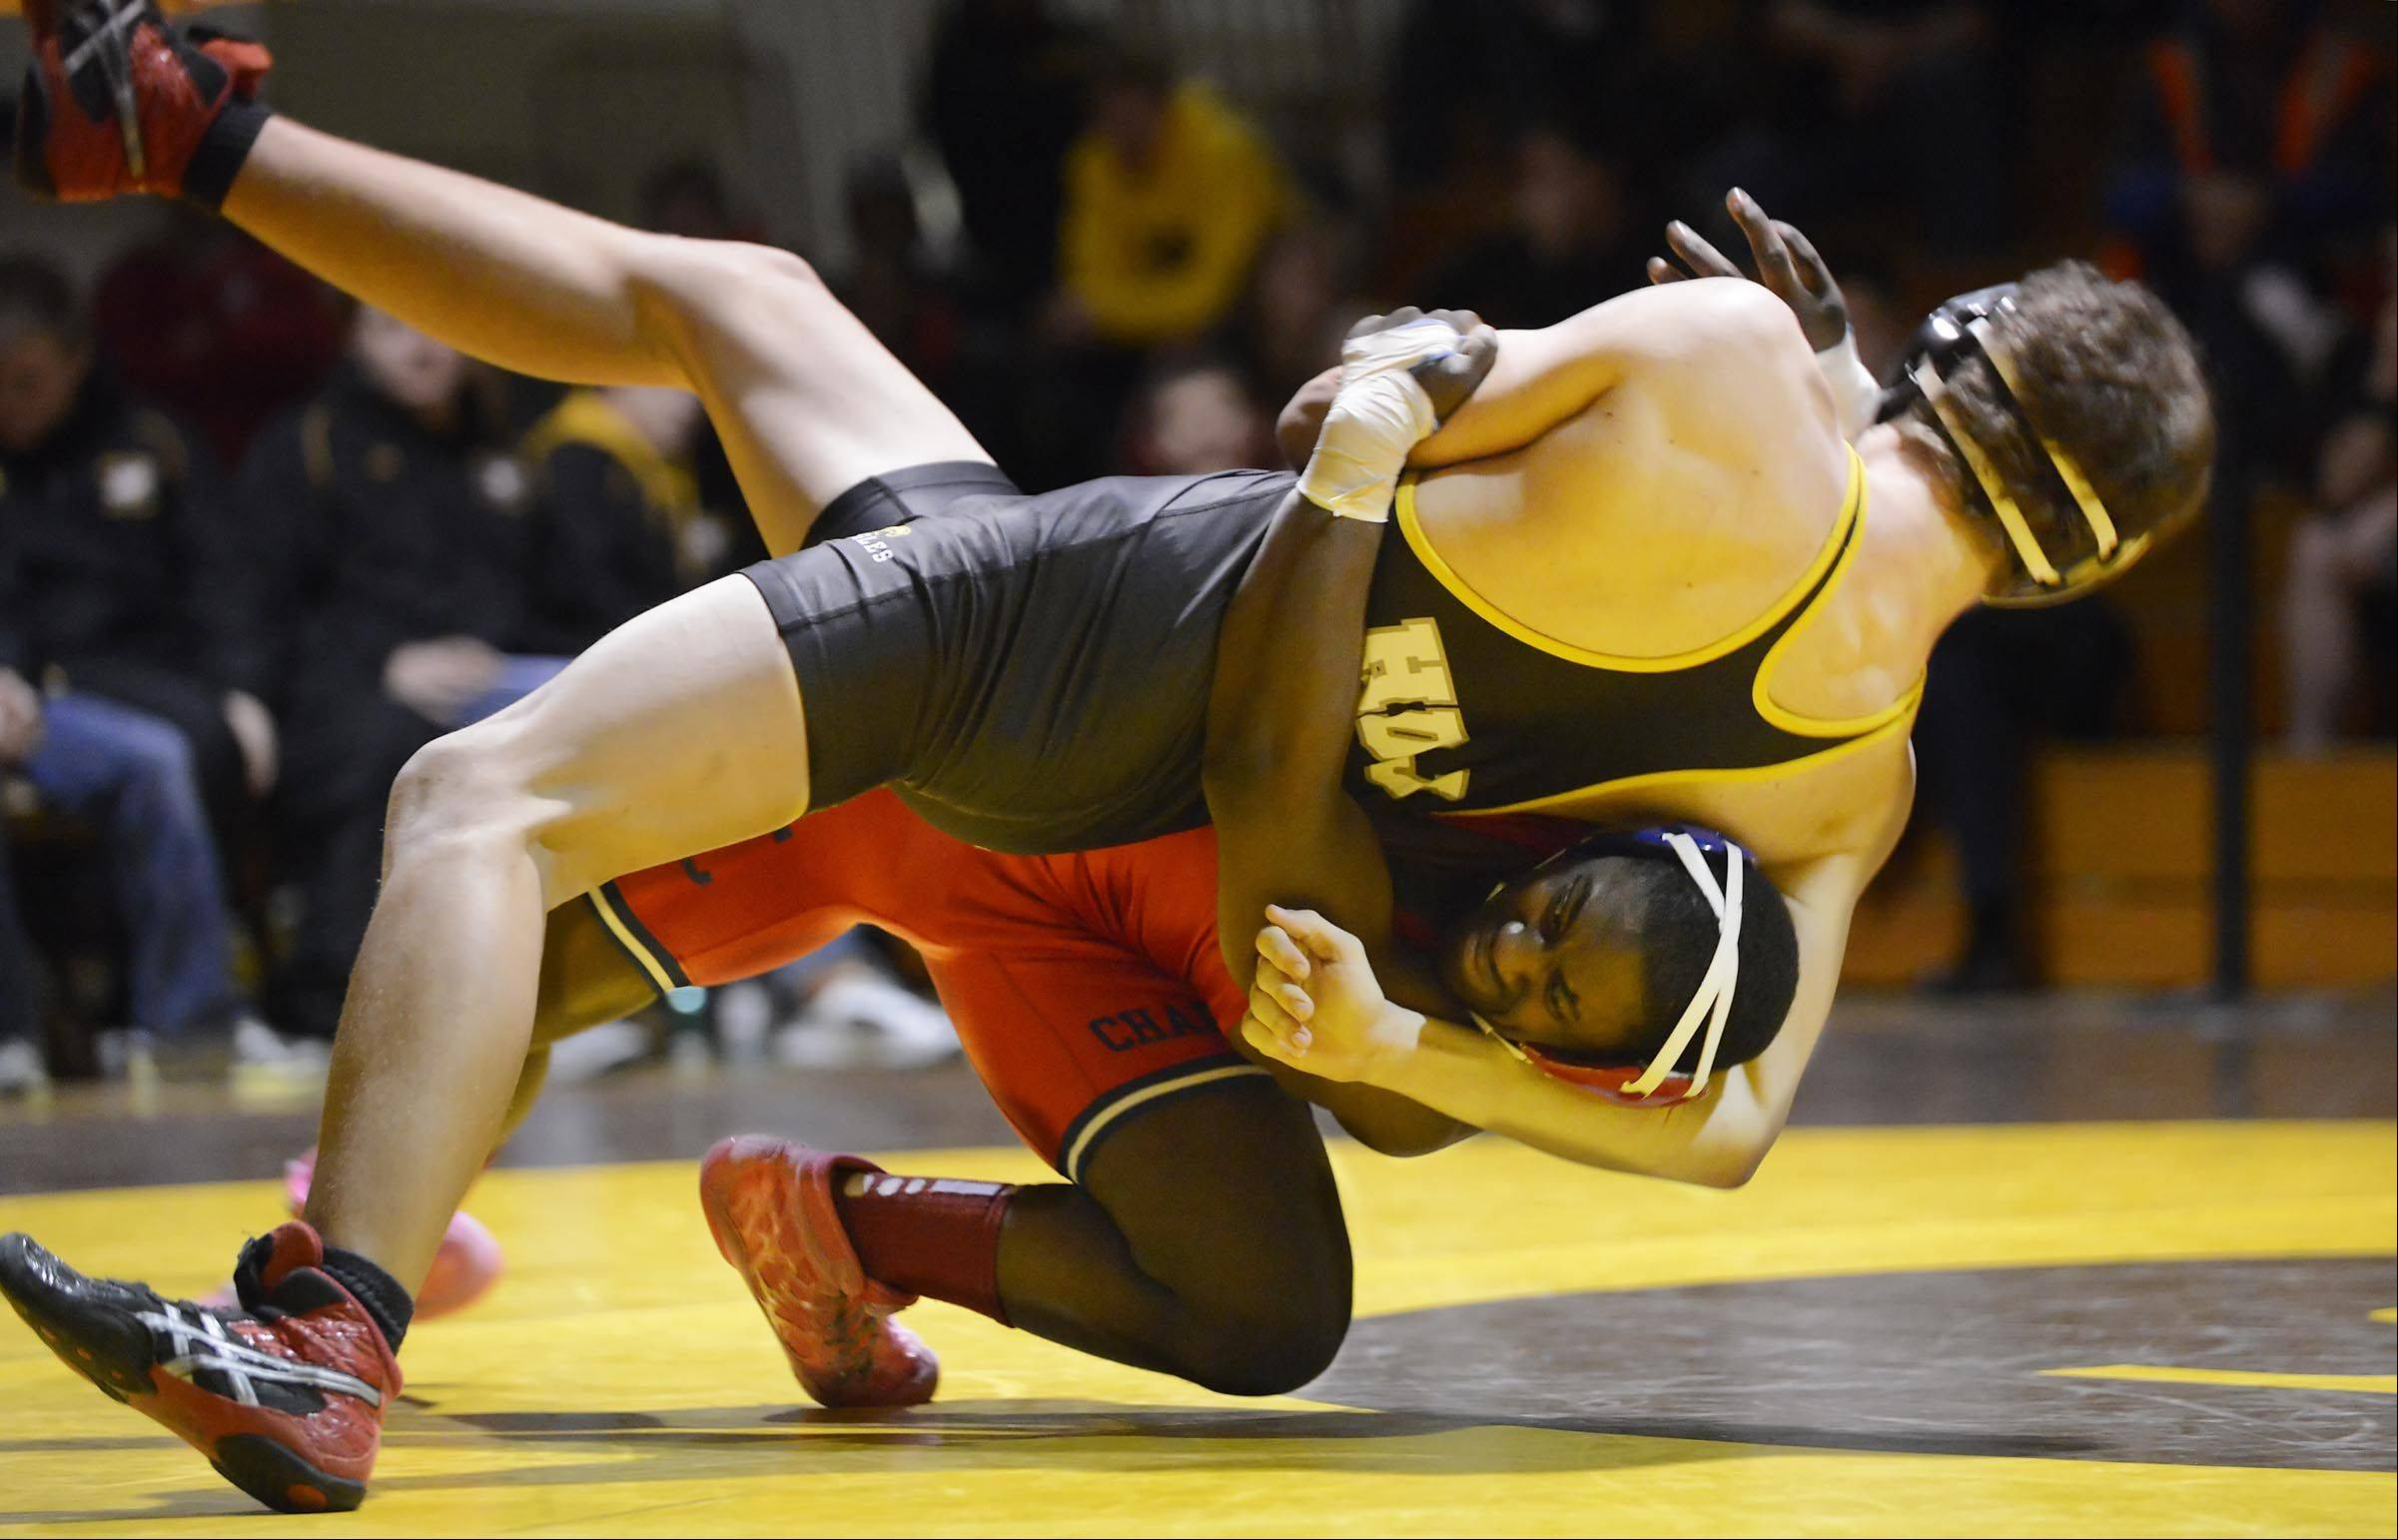 Dundee-Crown's DaShun Lloyd brings down Jacobs' Michael Bujocz Thursday in the 170-pound match in Algonquin. Bujocz was awarded the win after the referees determined Lloyd lost consciousness during the match and by rule was disqualified.